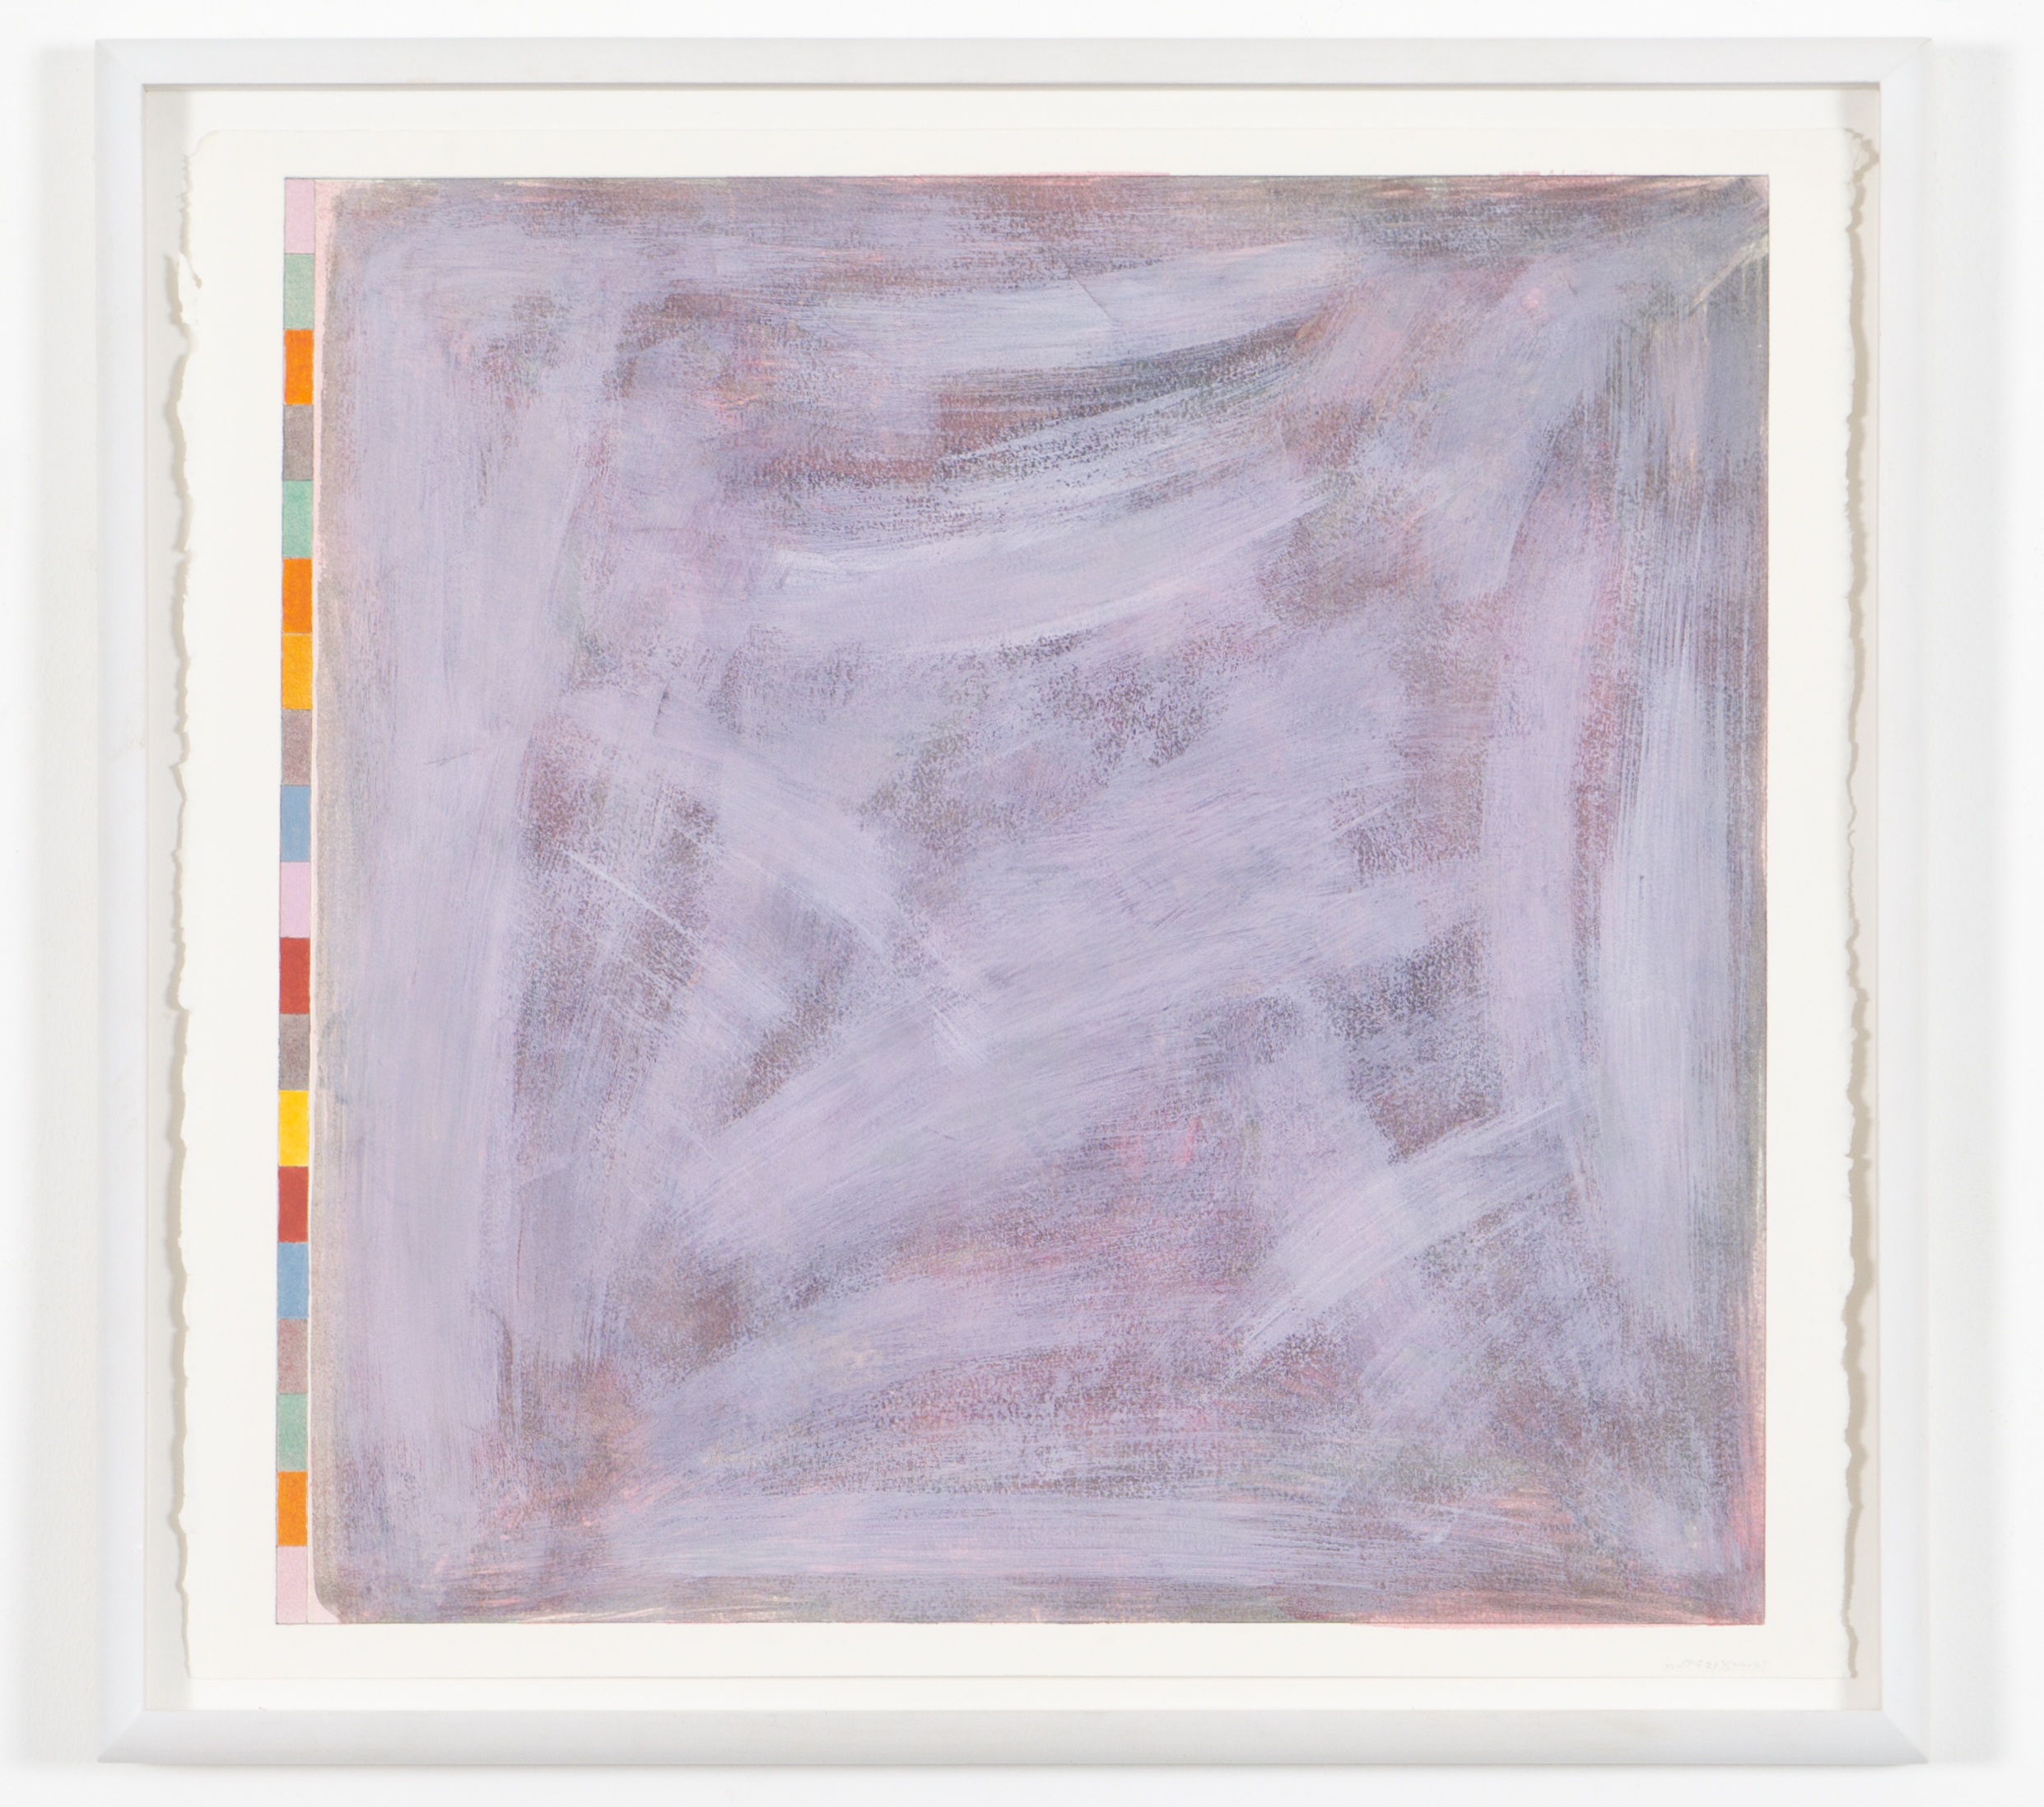 """Untitled (PG21), 2002, gouache on paper, 20 3/16""""x20 3/4"""" (image), 23 5/8""""x23 3/8"""" (paper)"""